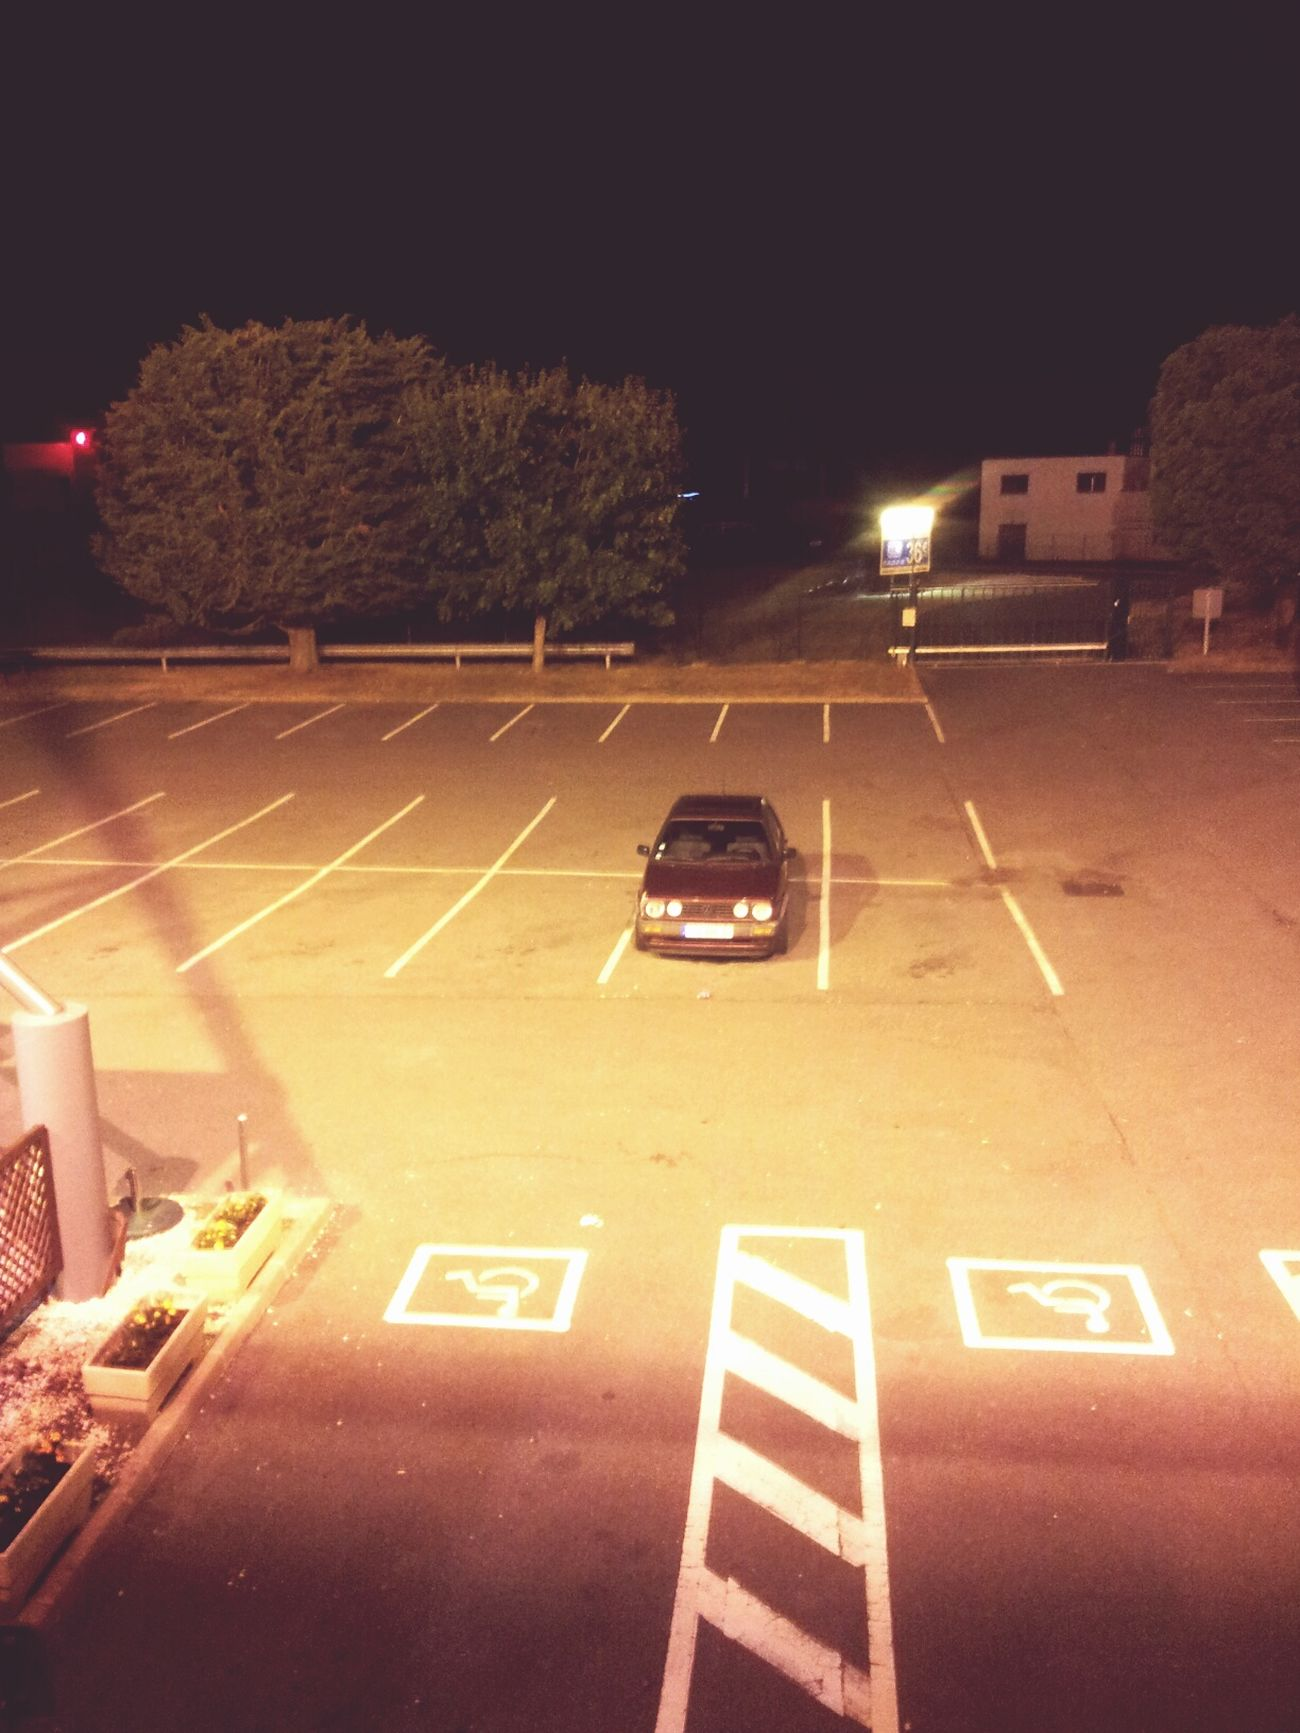 Parking Old Car Lonely Lonely Car Darkness And Light Night Nightlife Emptiness Taking Photos Hello World